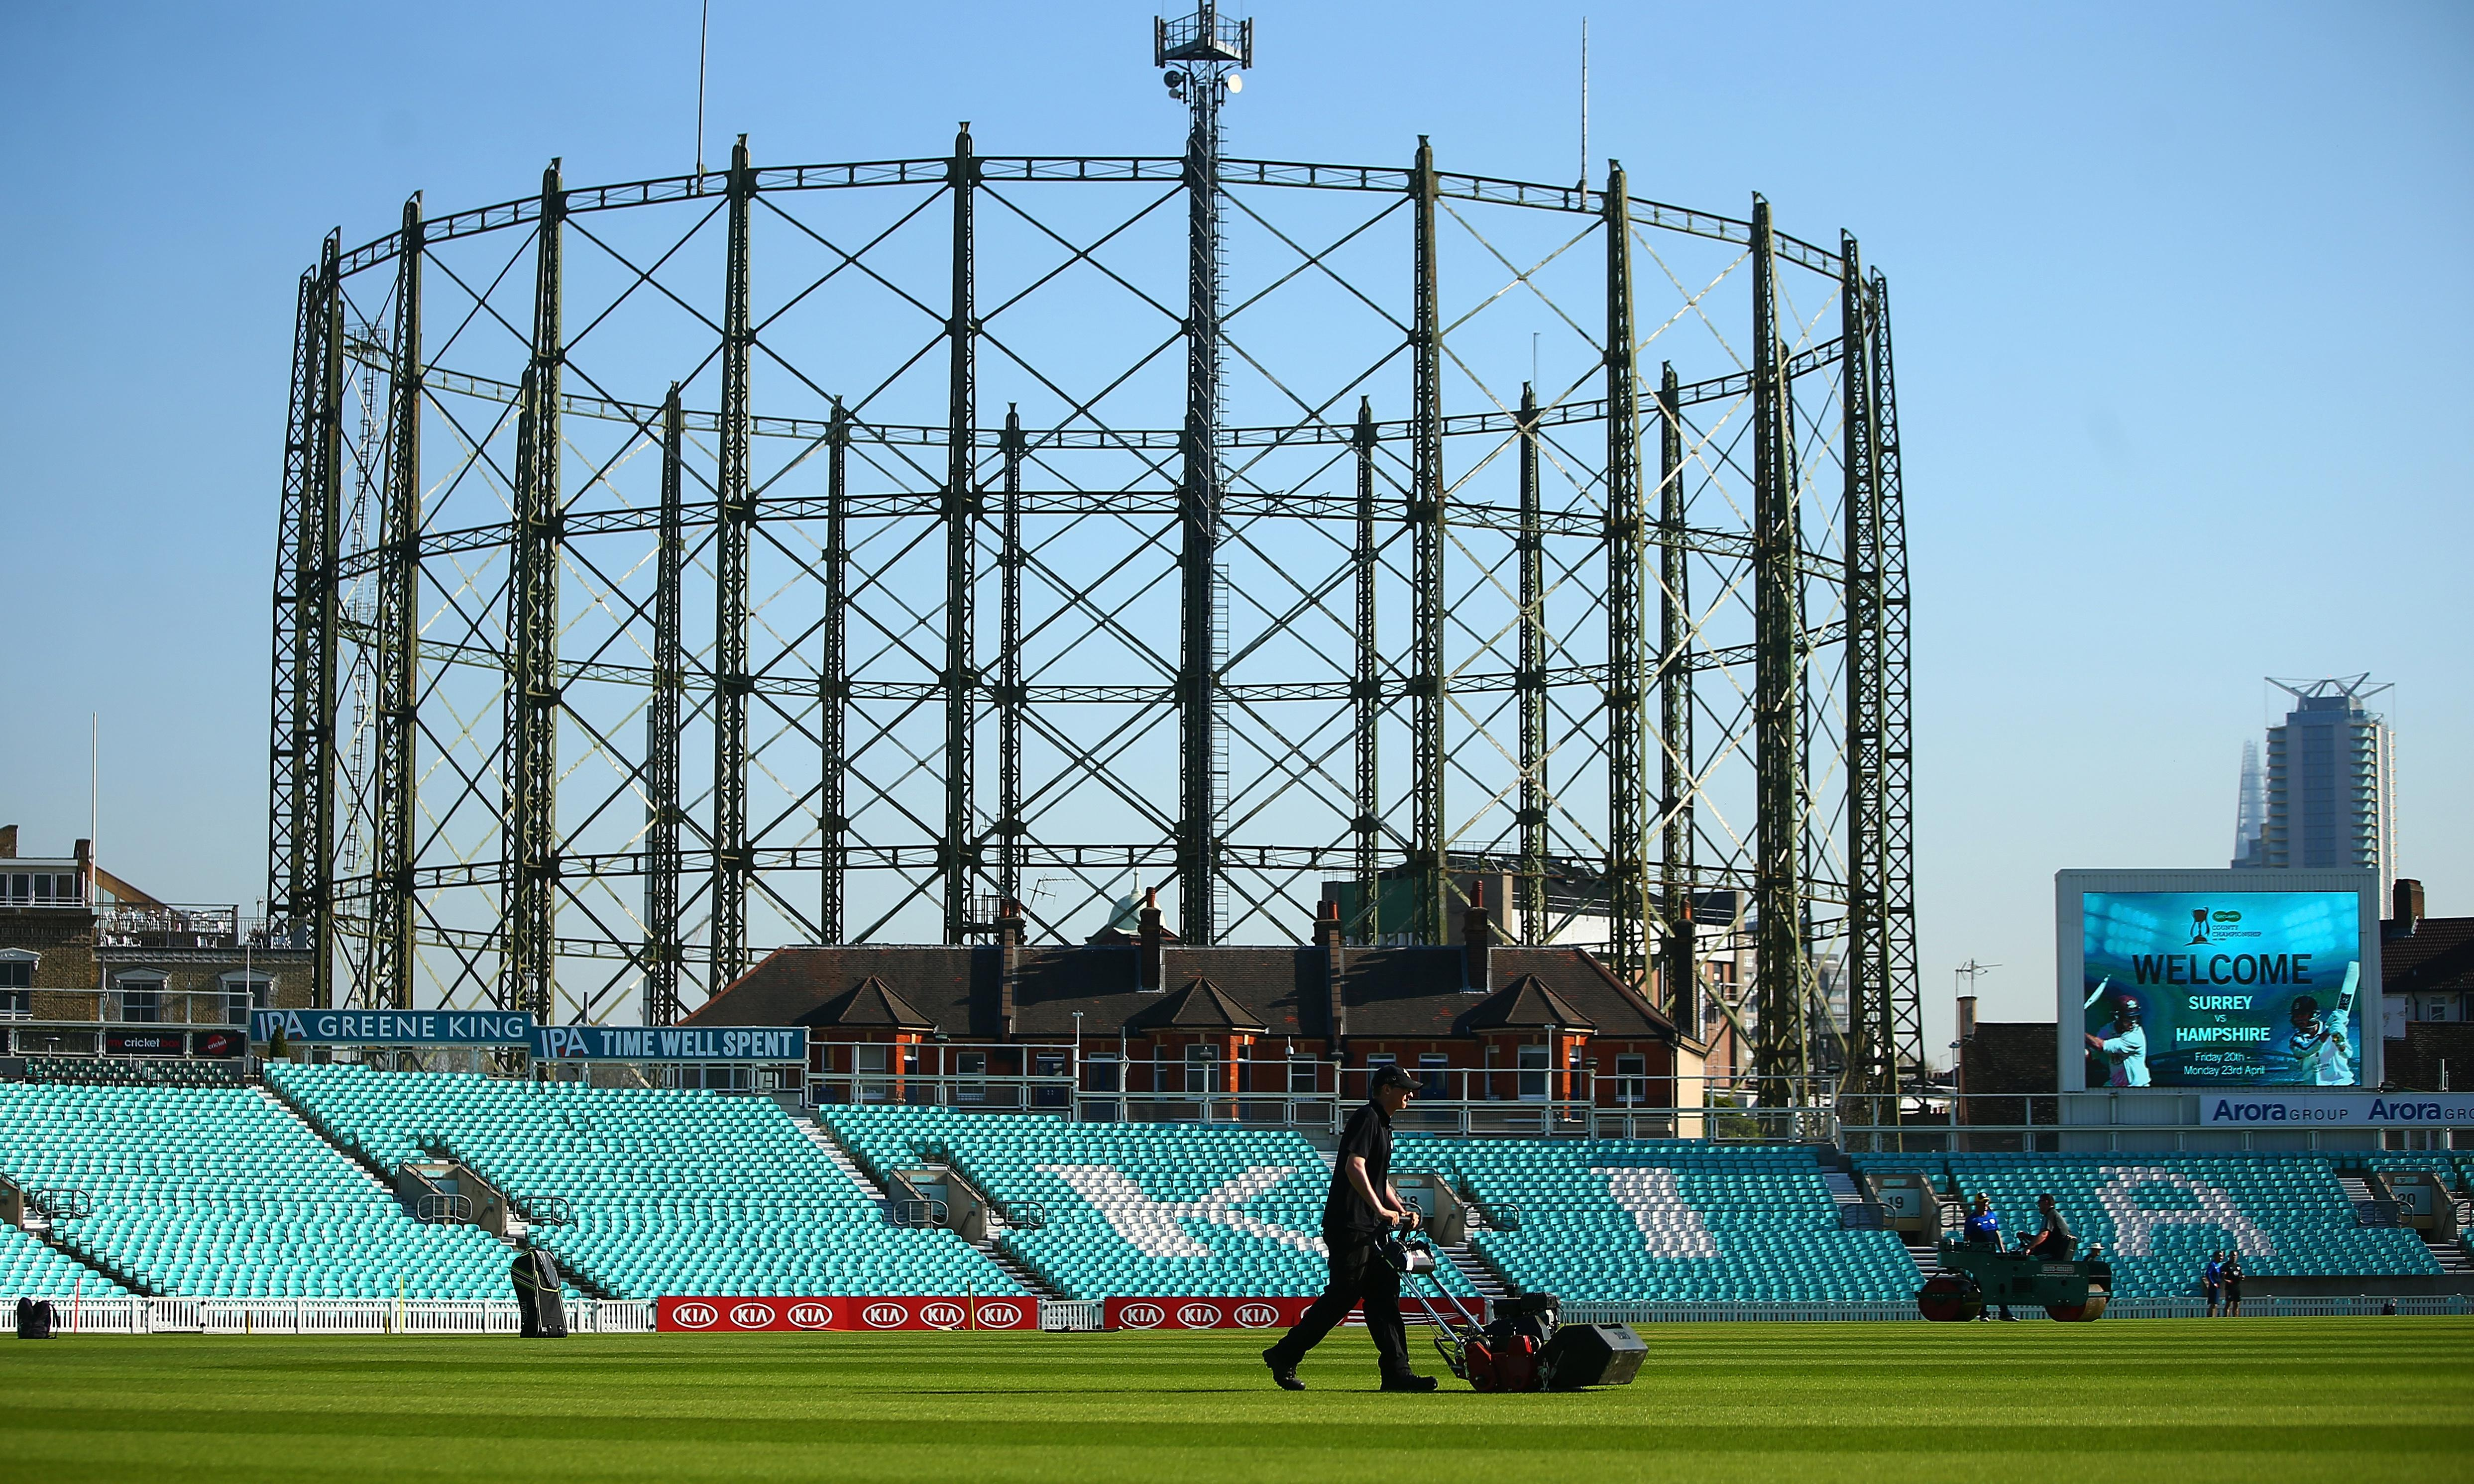 ECB and Surrey at loggerheads over Hundred tournament blueprint